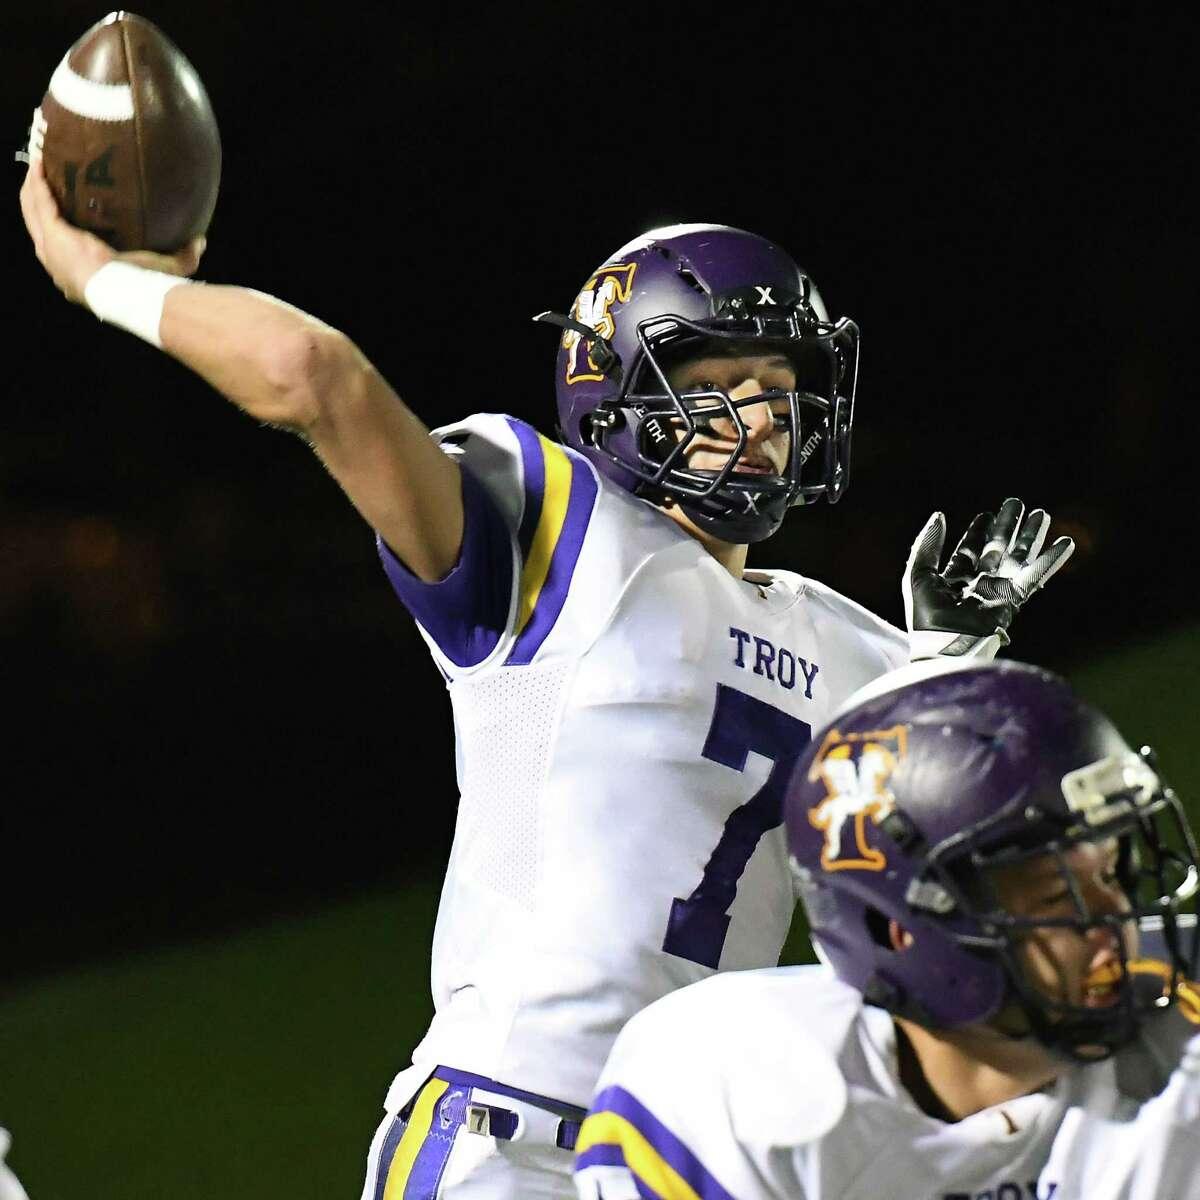 Troy QB Joe Casale fires off a pass during their Class AA Super Bowl game against Saratoga High Friday Nov. 3, 2017 at UAlbany's Casey Stadium in Albany, NY. (John Carl D'Annibale / Times Union)